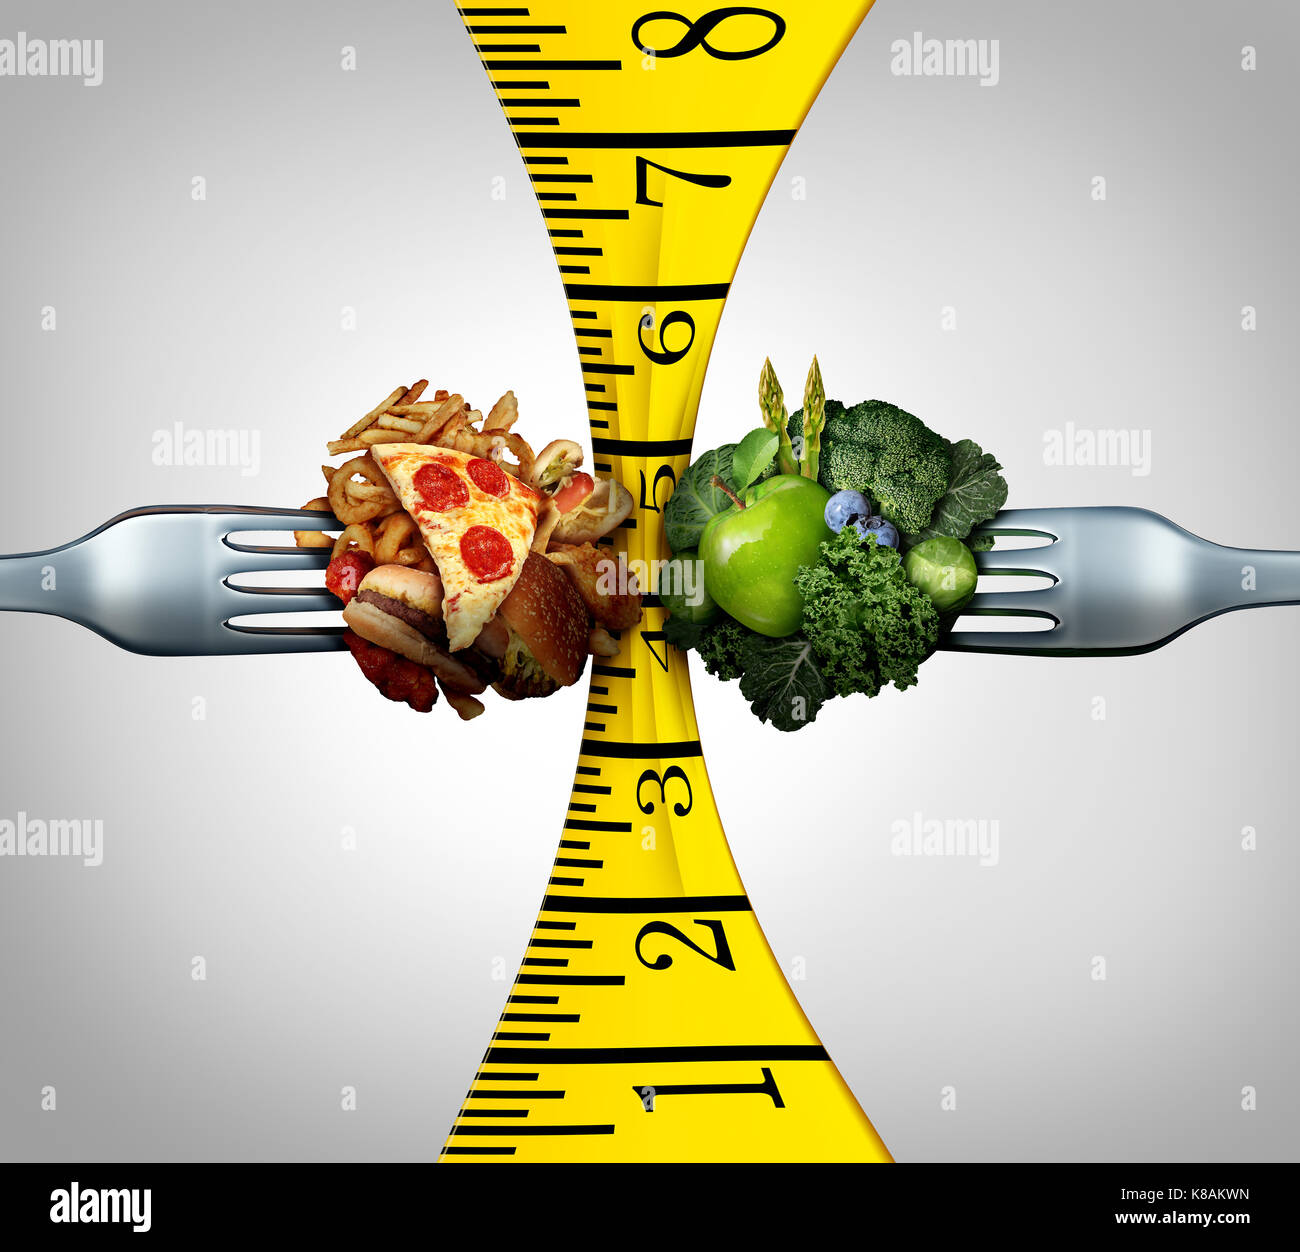 Measuring tape food and weight control squeeze concept as two forks with junk food and healthy fruit and vegetables - Stock Image